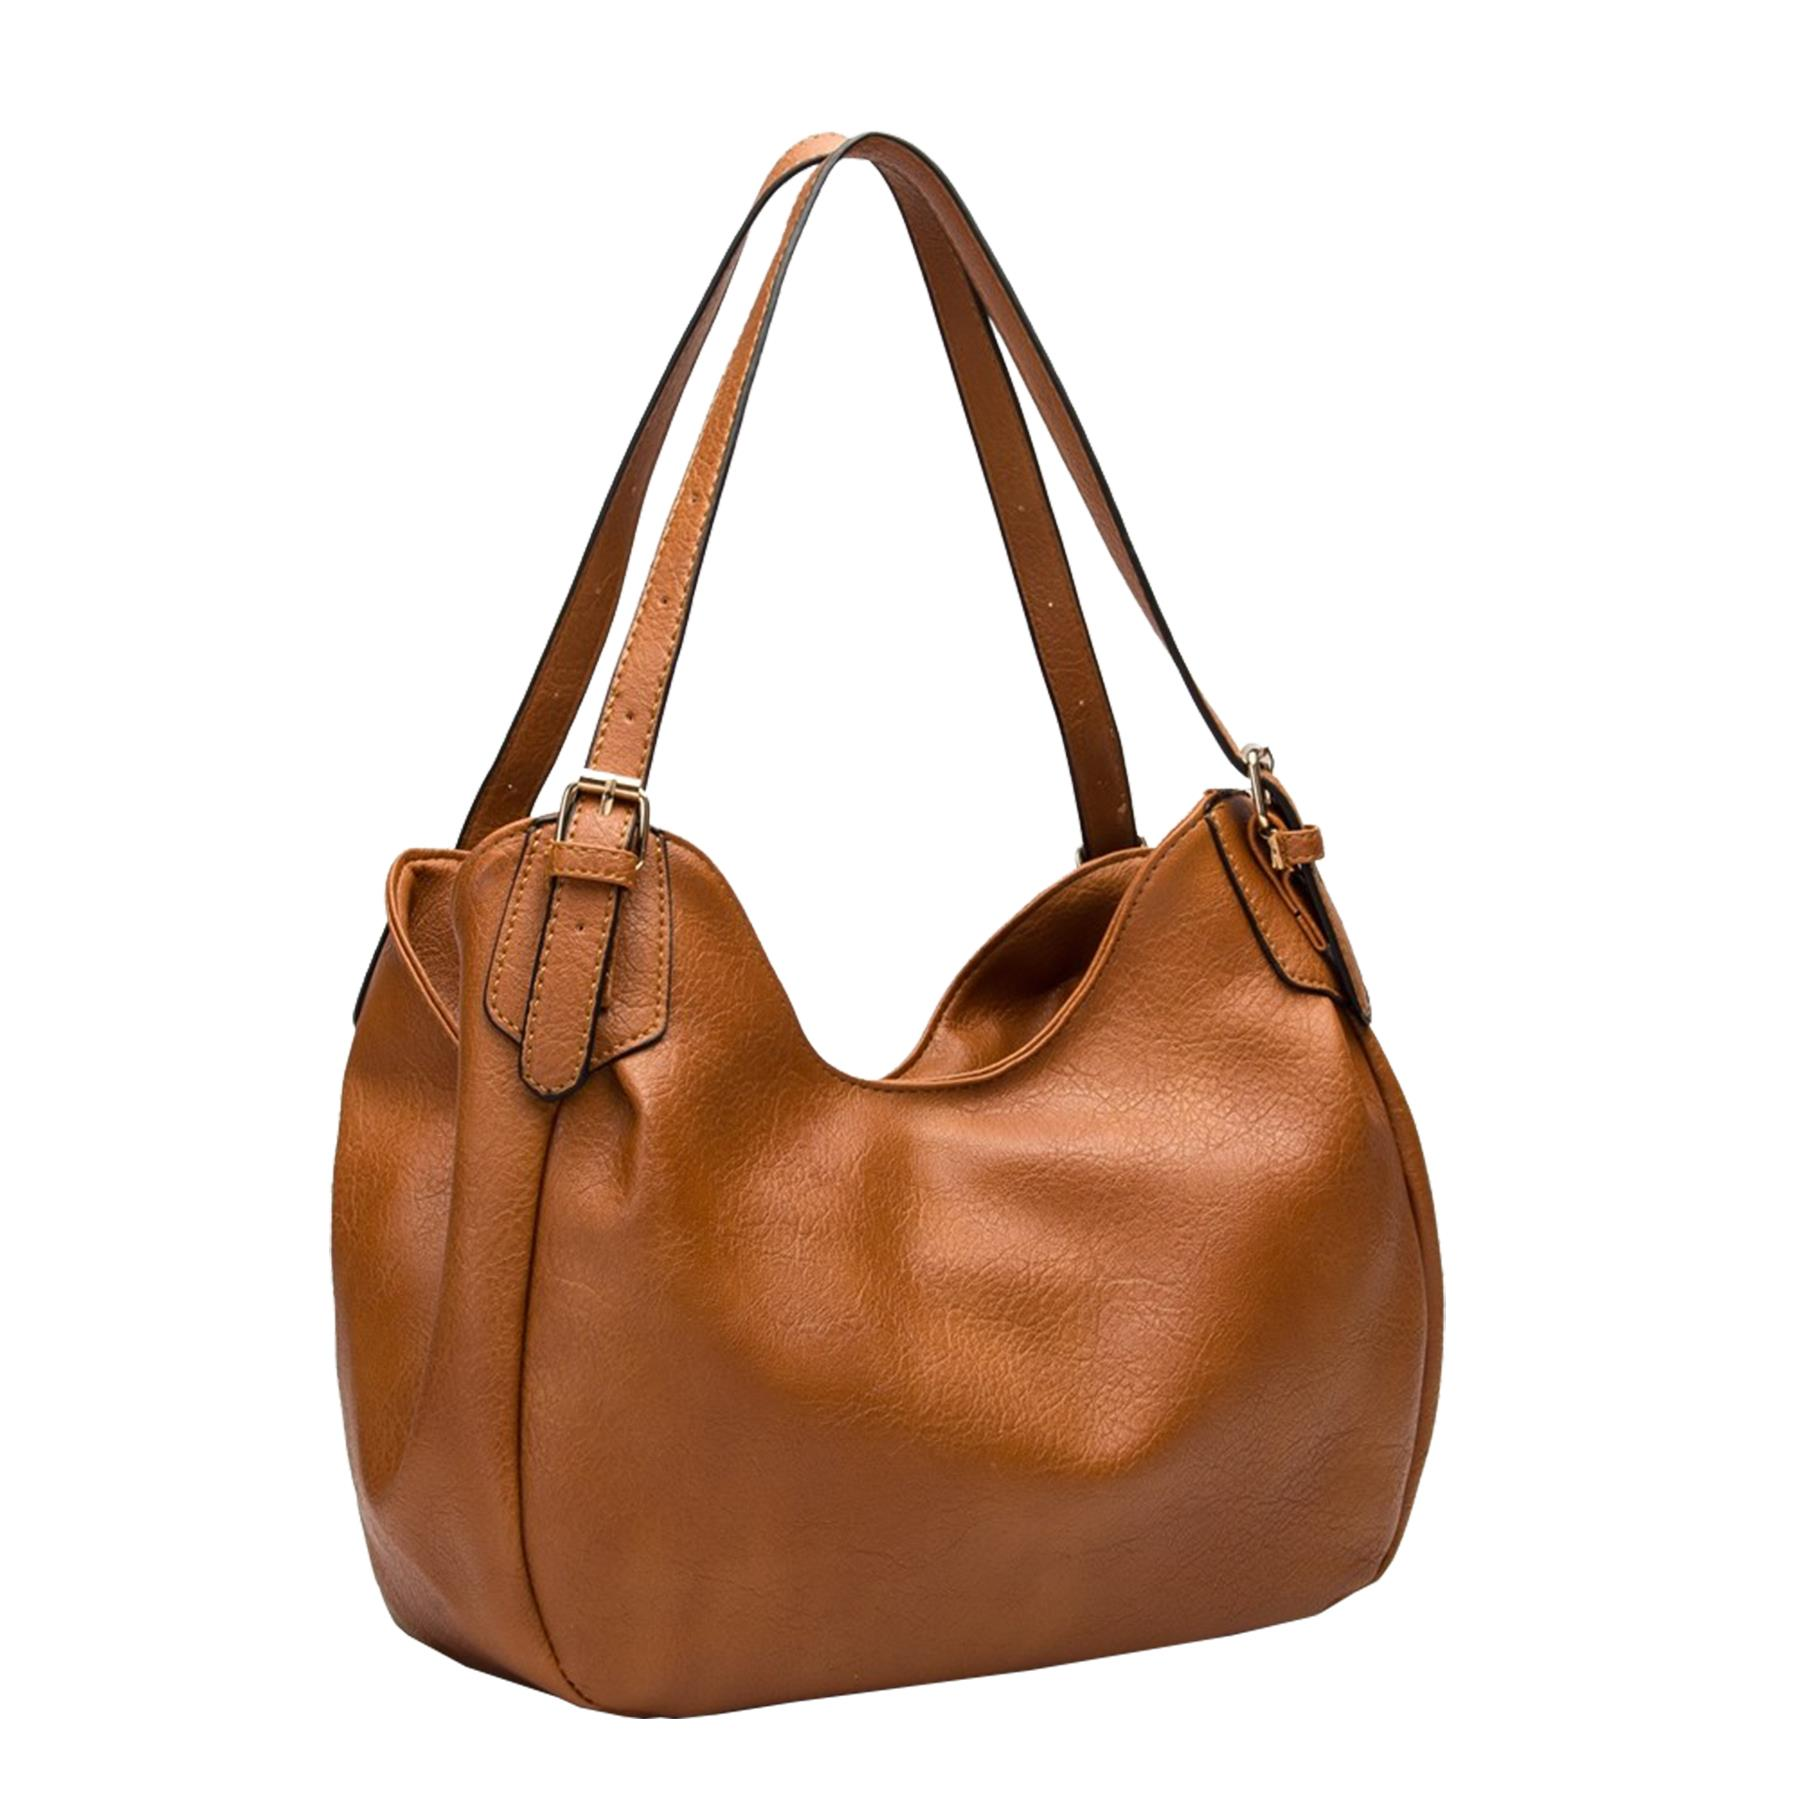 New-Ladies-Buckled-Straps-Two-Toned-Faux-Leather-Slouchy-Shoulder-Bag thumbnail 15